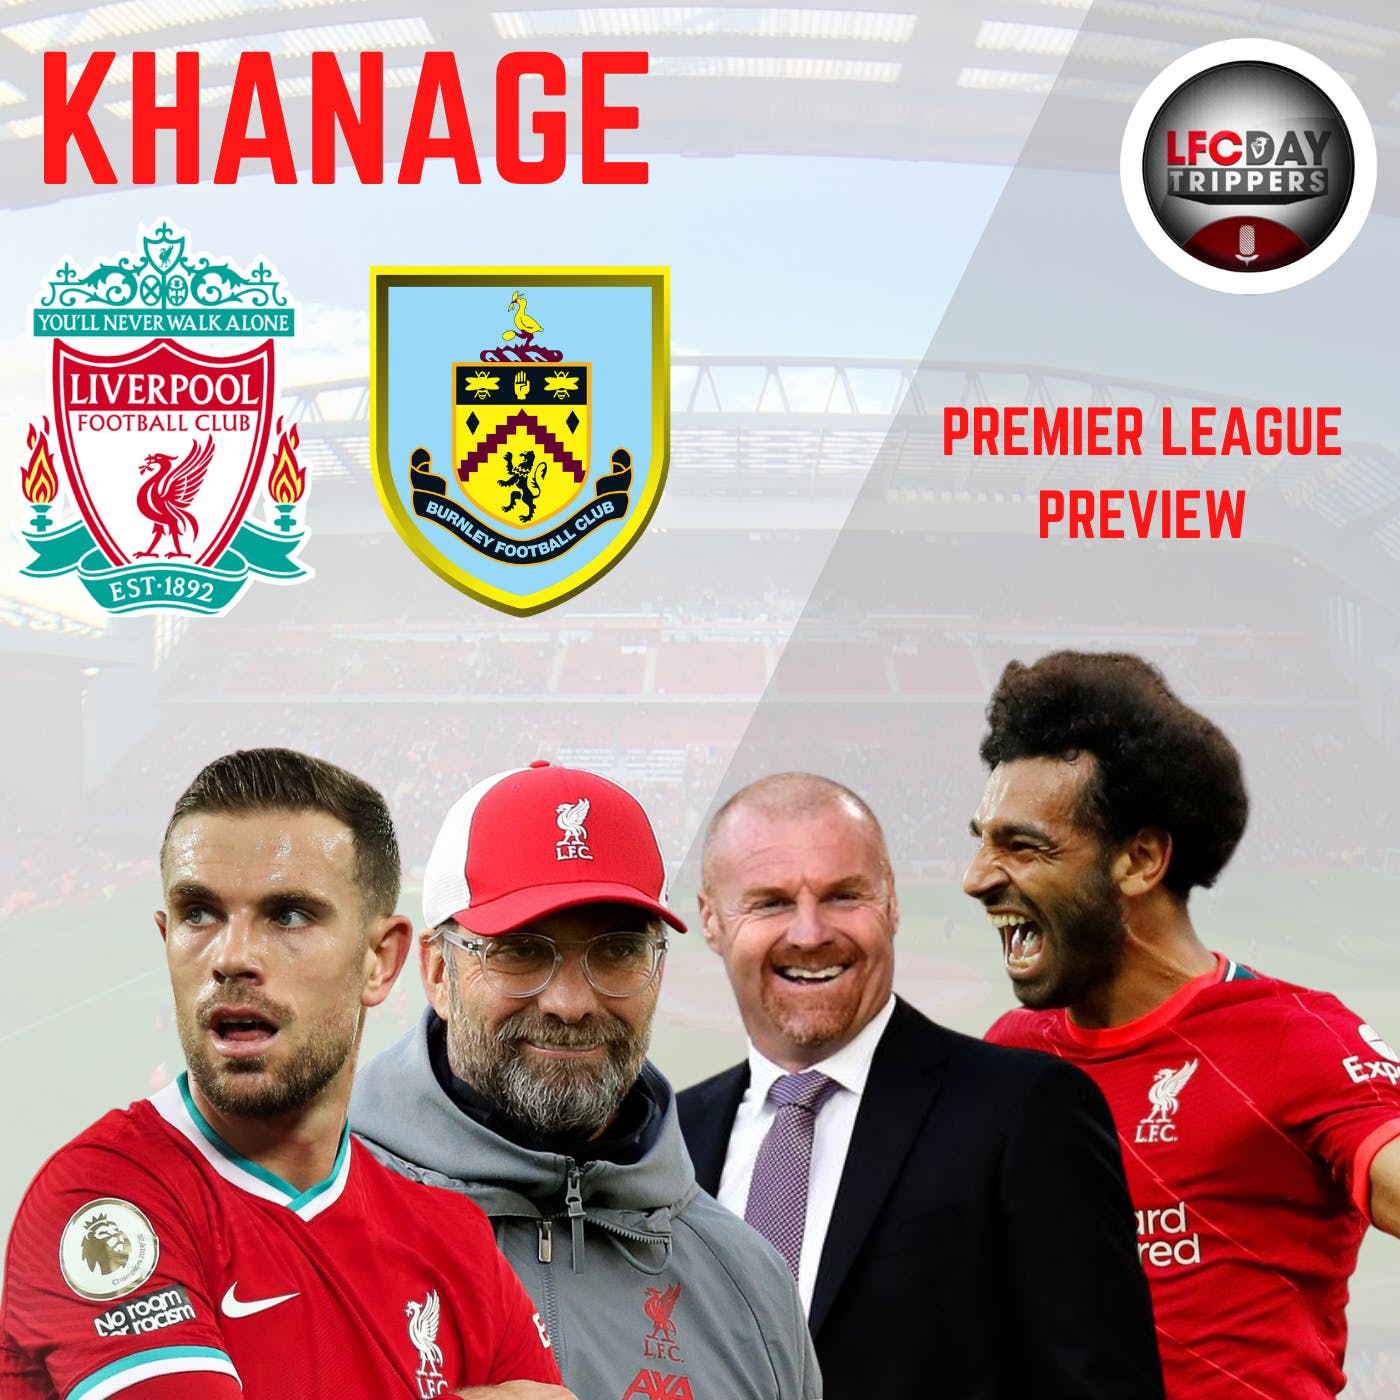 Liverpool v Burnley Preview | Khanage | LFC Daytrippers